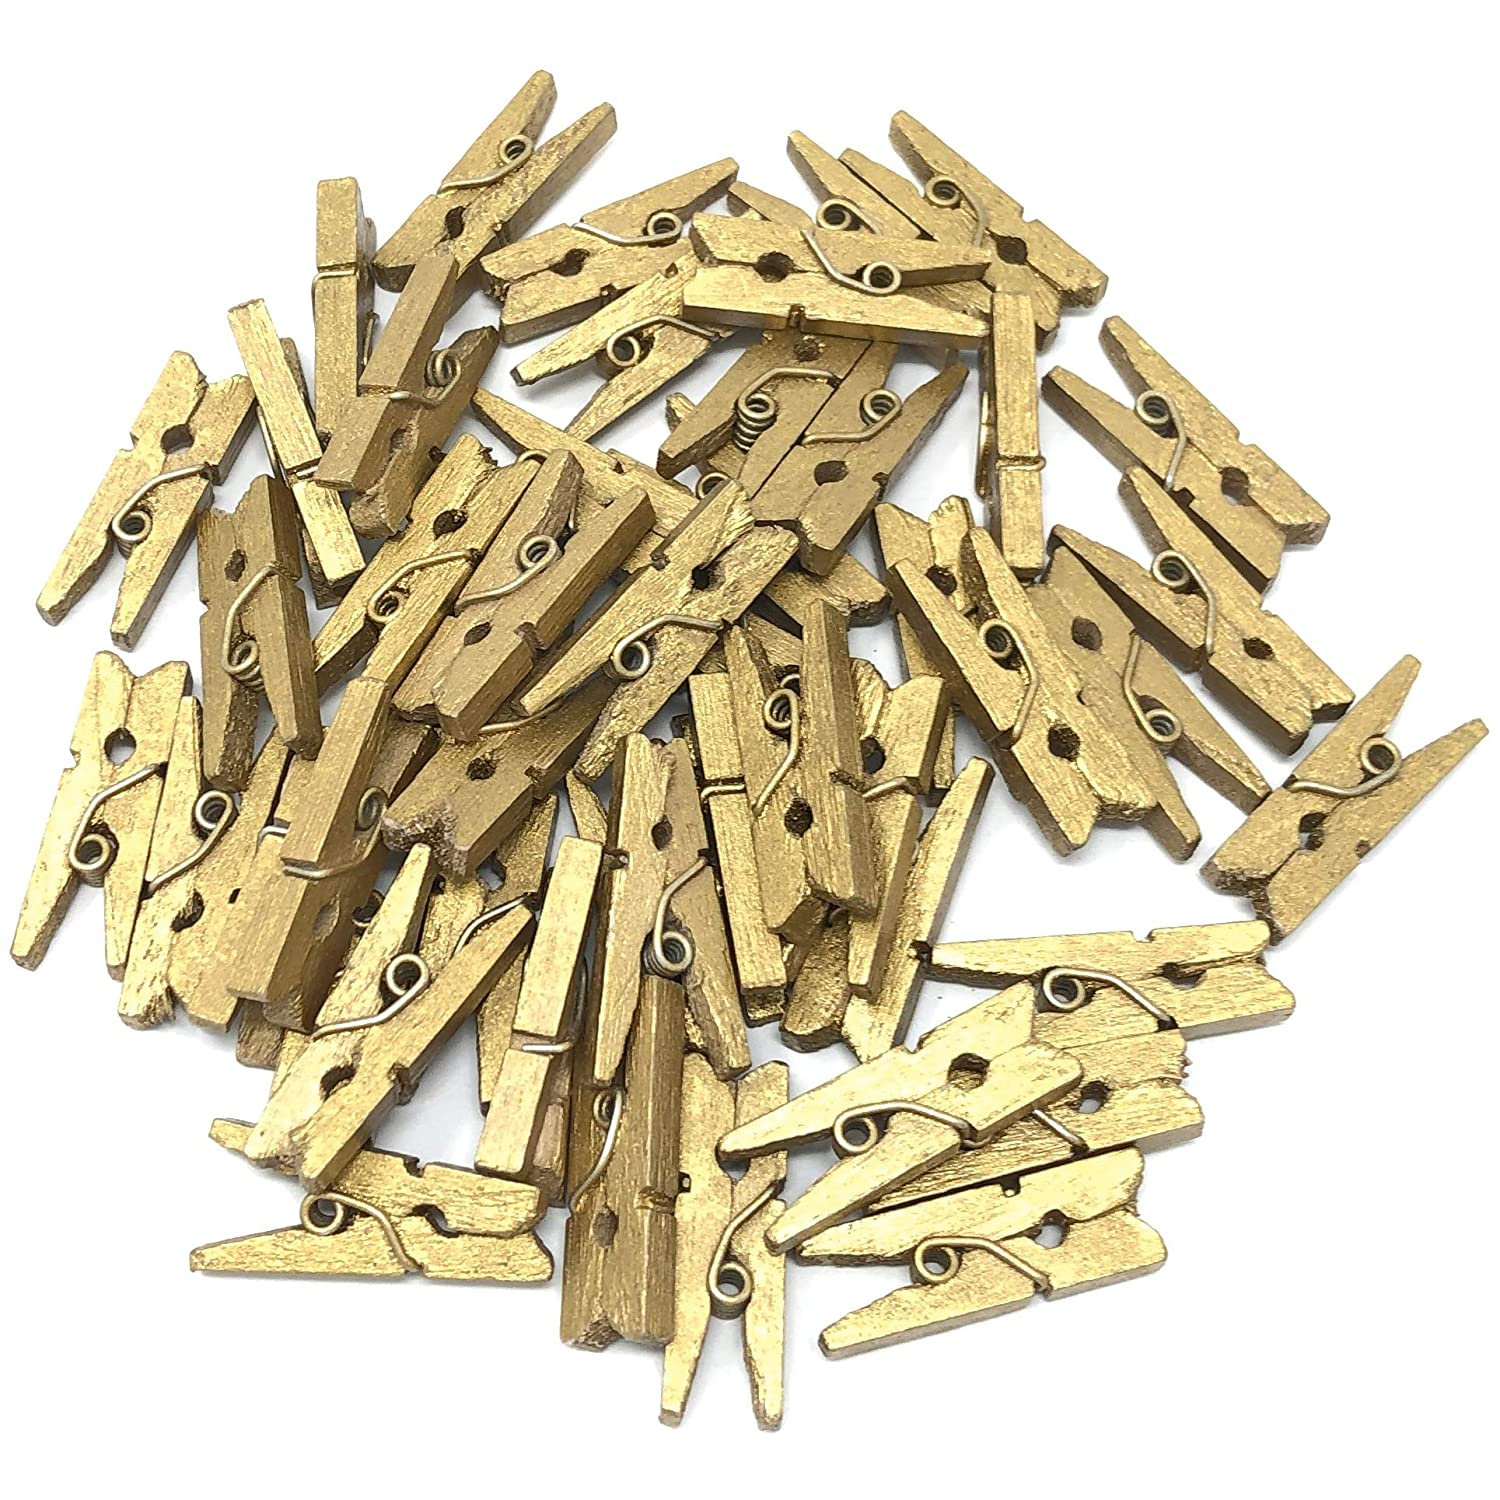 25mm Mini Gold Wooden Clothes Peg Craft For Vintage Wedding - Pack of 100 Wedding Touches